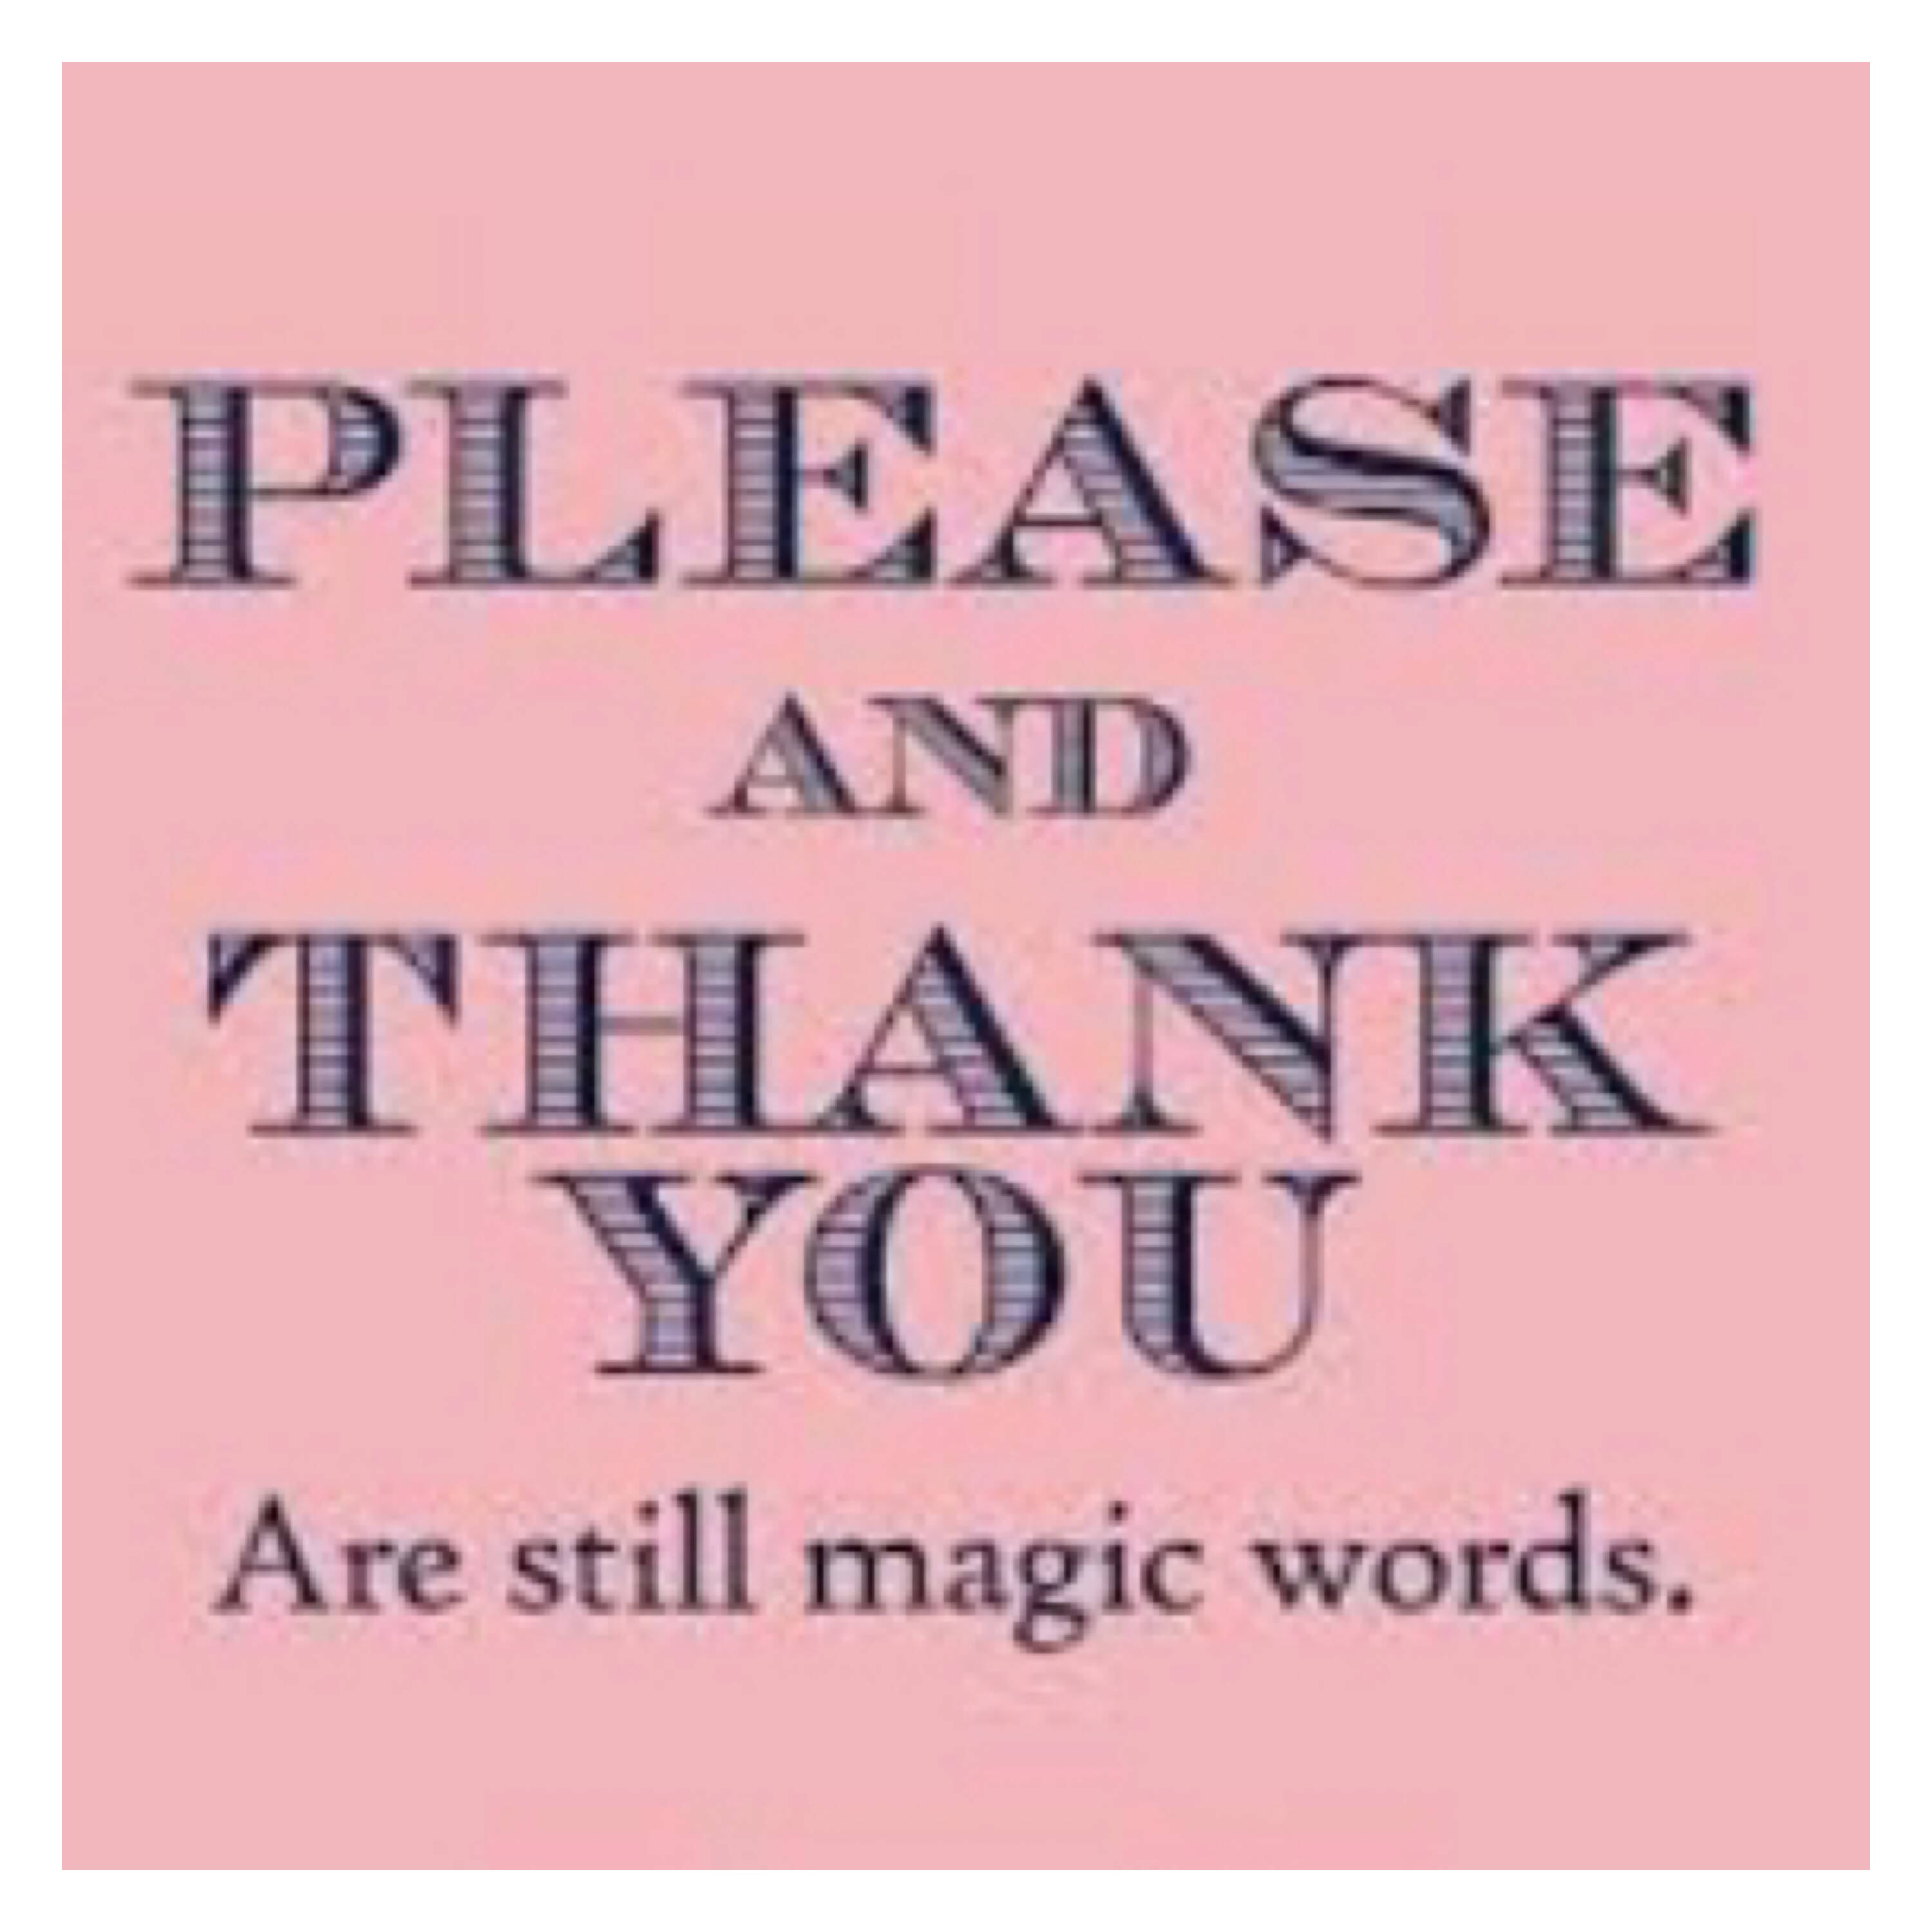 Black text, please and thank you are still magic words on pink background